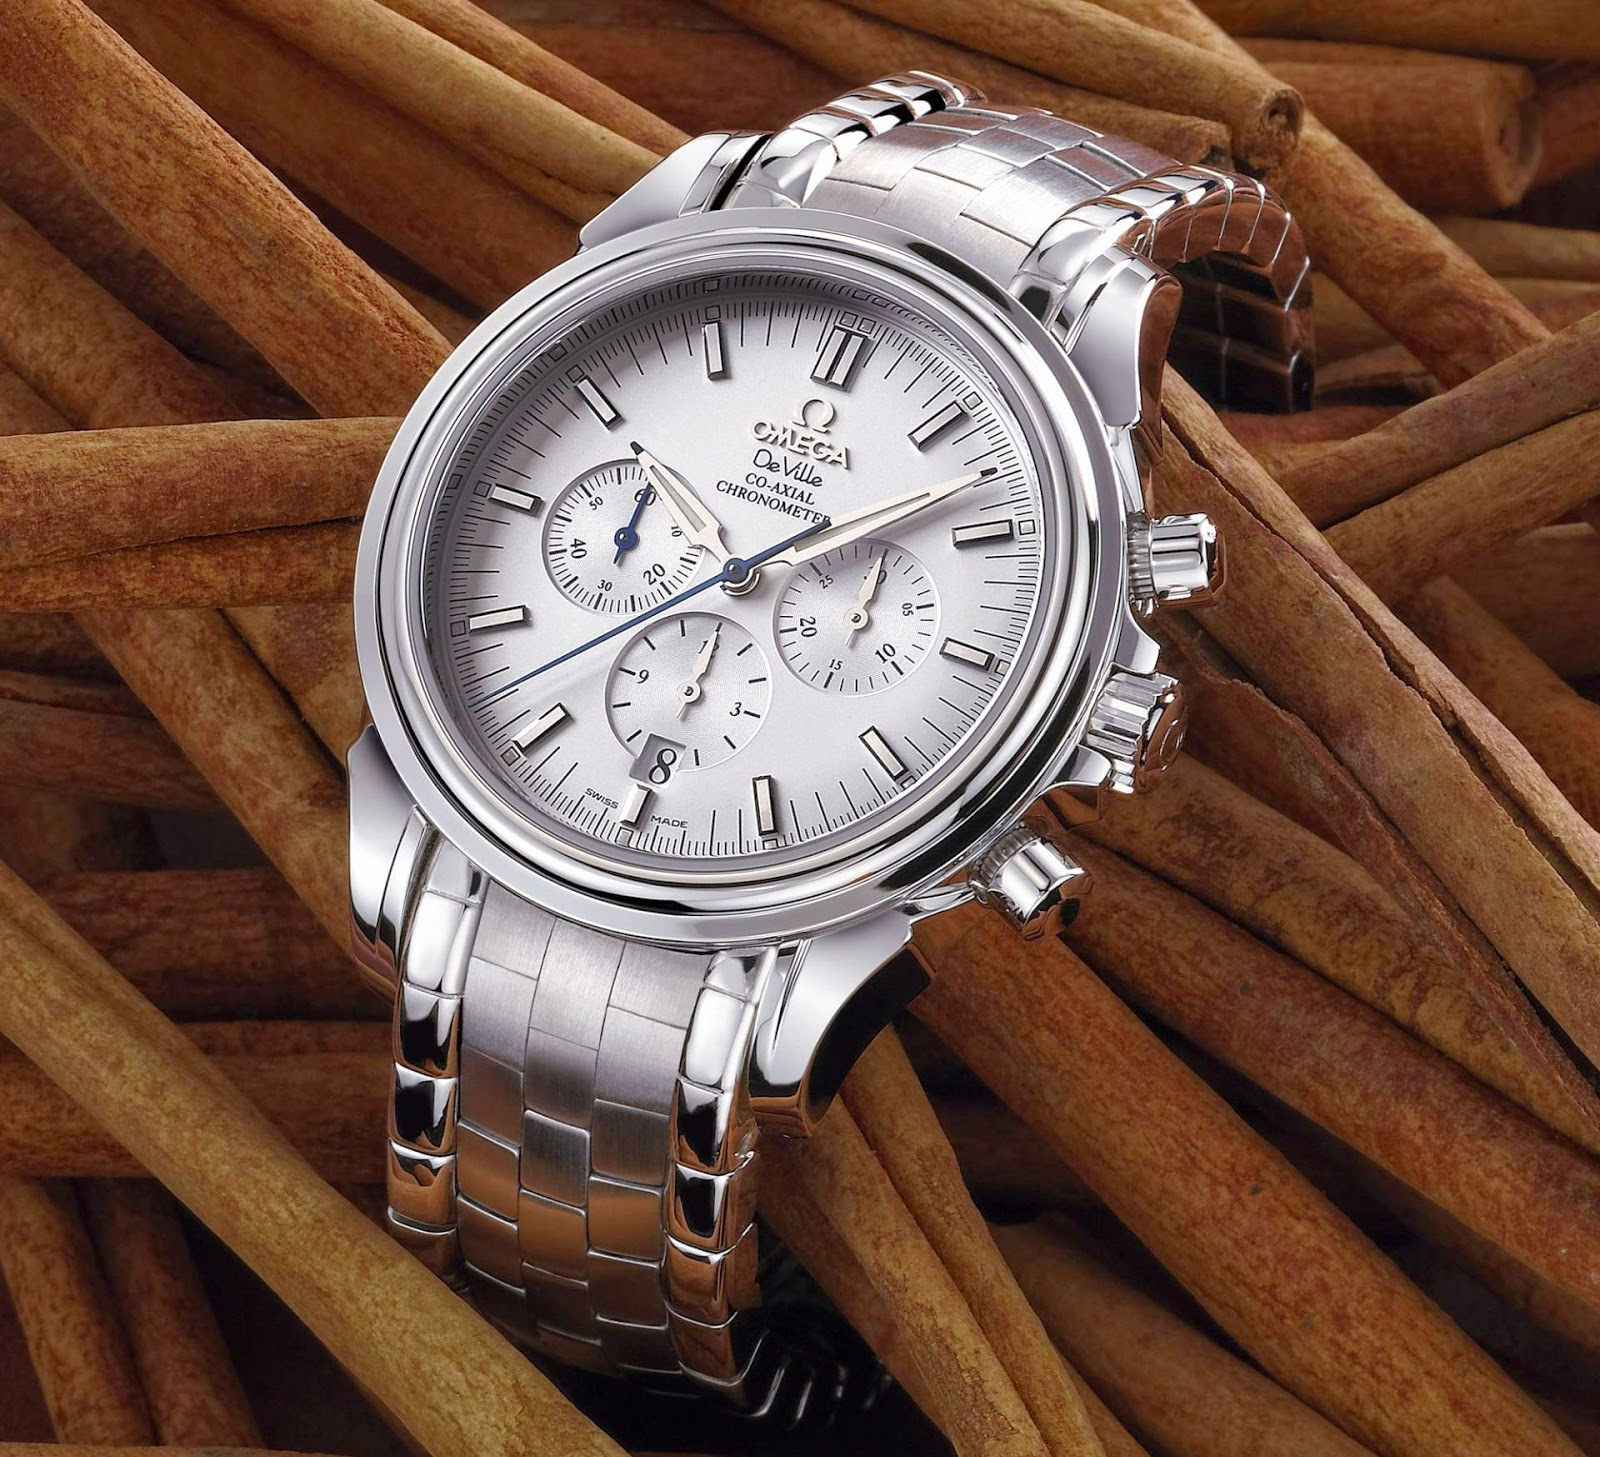 OMEGA De Ville Co-Axial Chronograph: The First Chronograph in the World with a Co-Axial Escapement